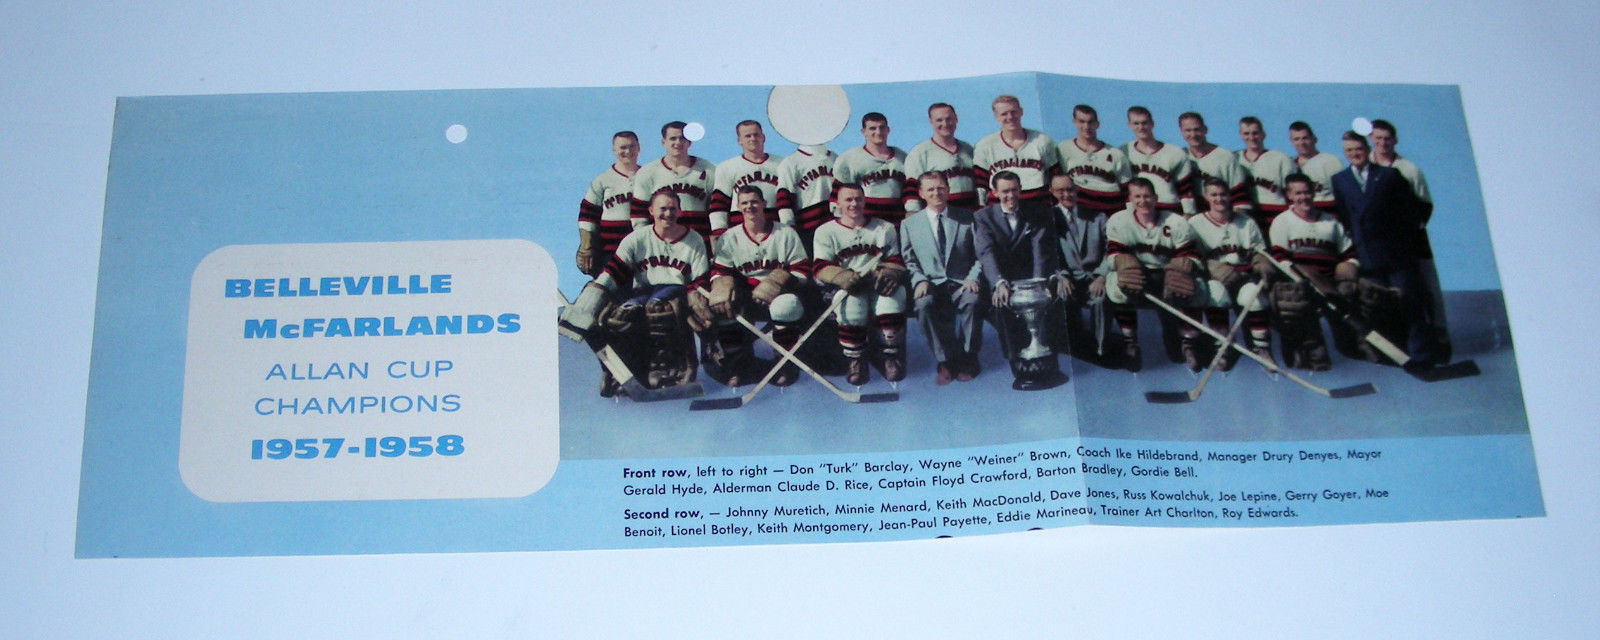 1957-58 BELLEVILLE McFARLANDS Allan Cup CHAMPIONS Hockey Team Picture Vtg color